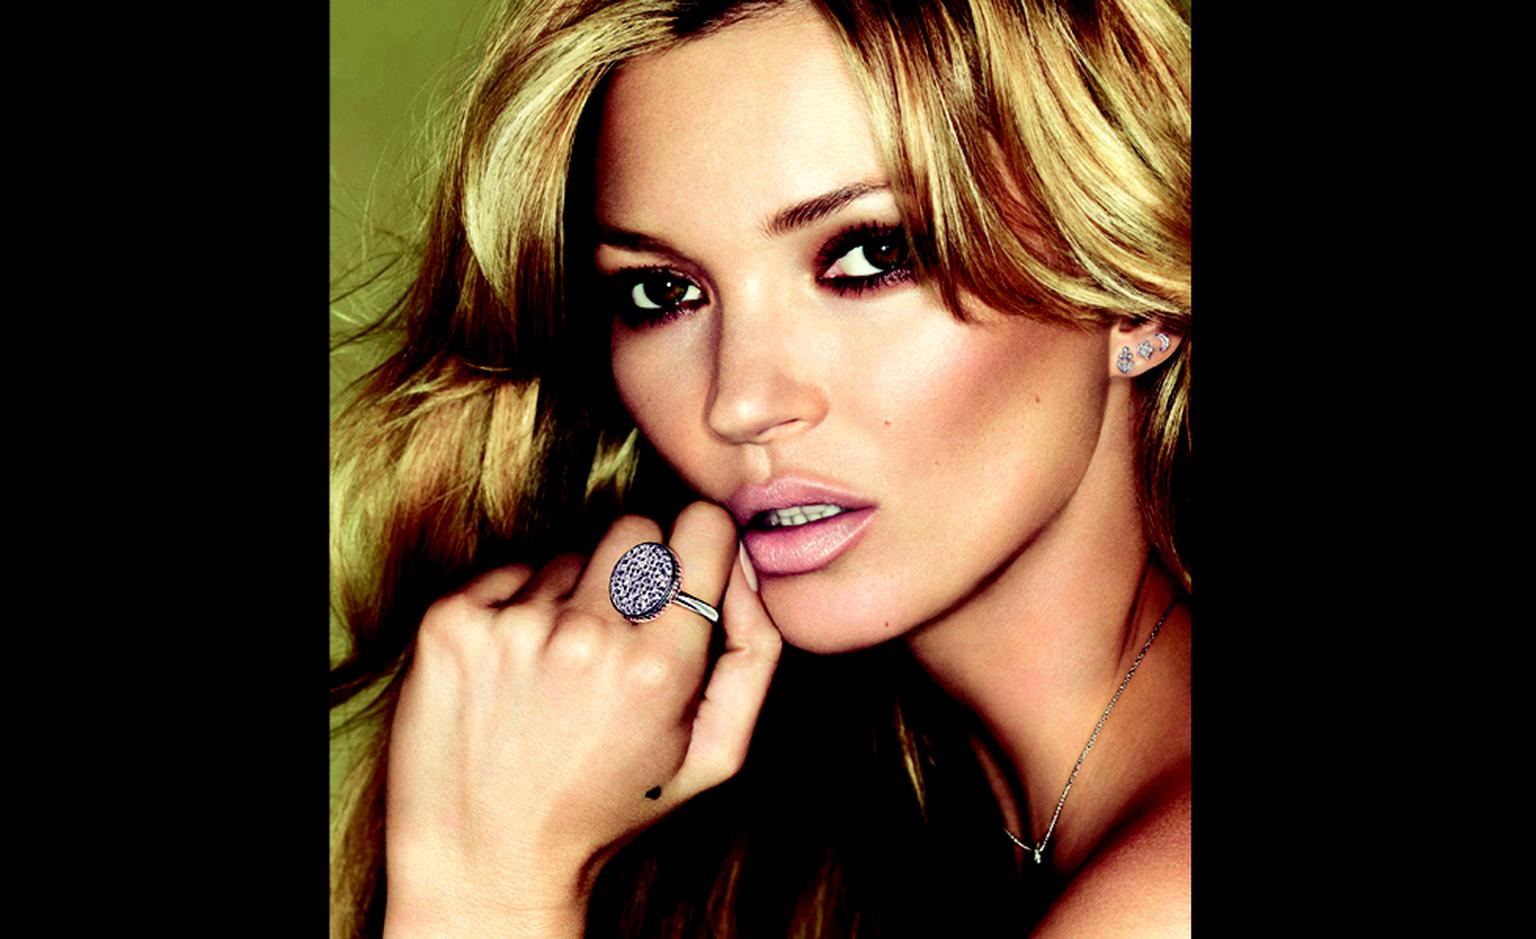 Kate Moss has designed a range of jewels for Fred inspired by her tattoos.